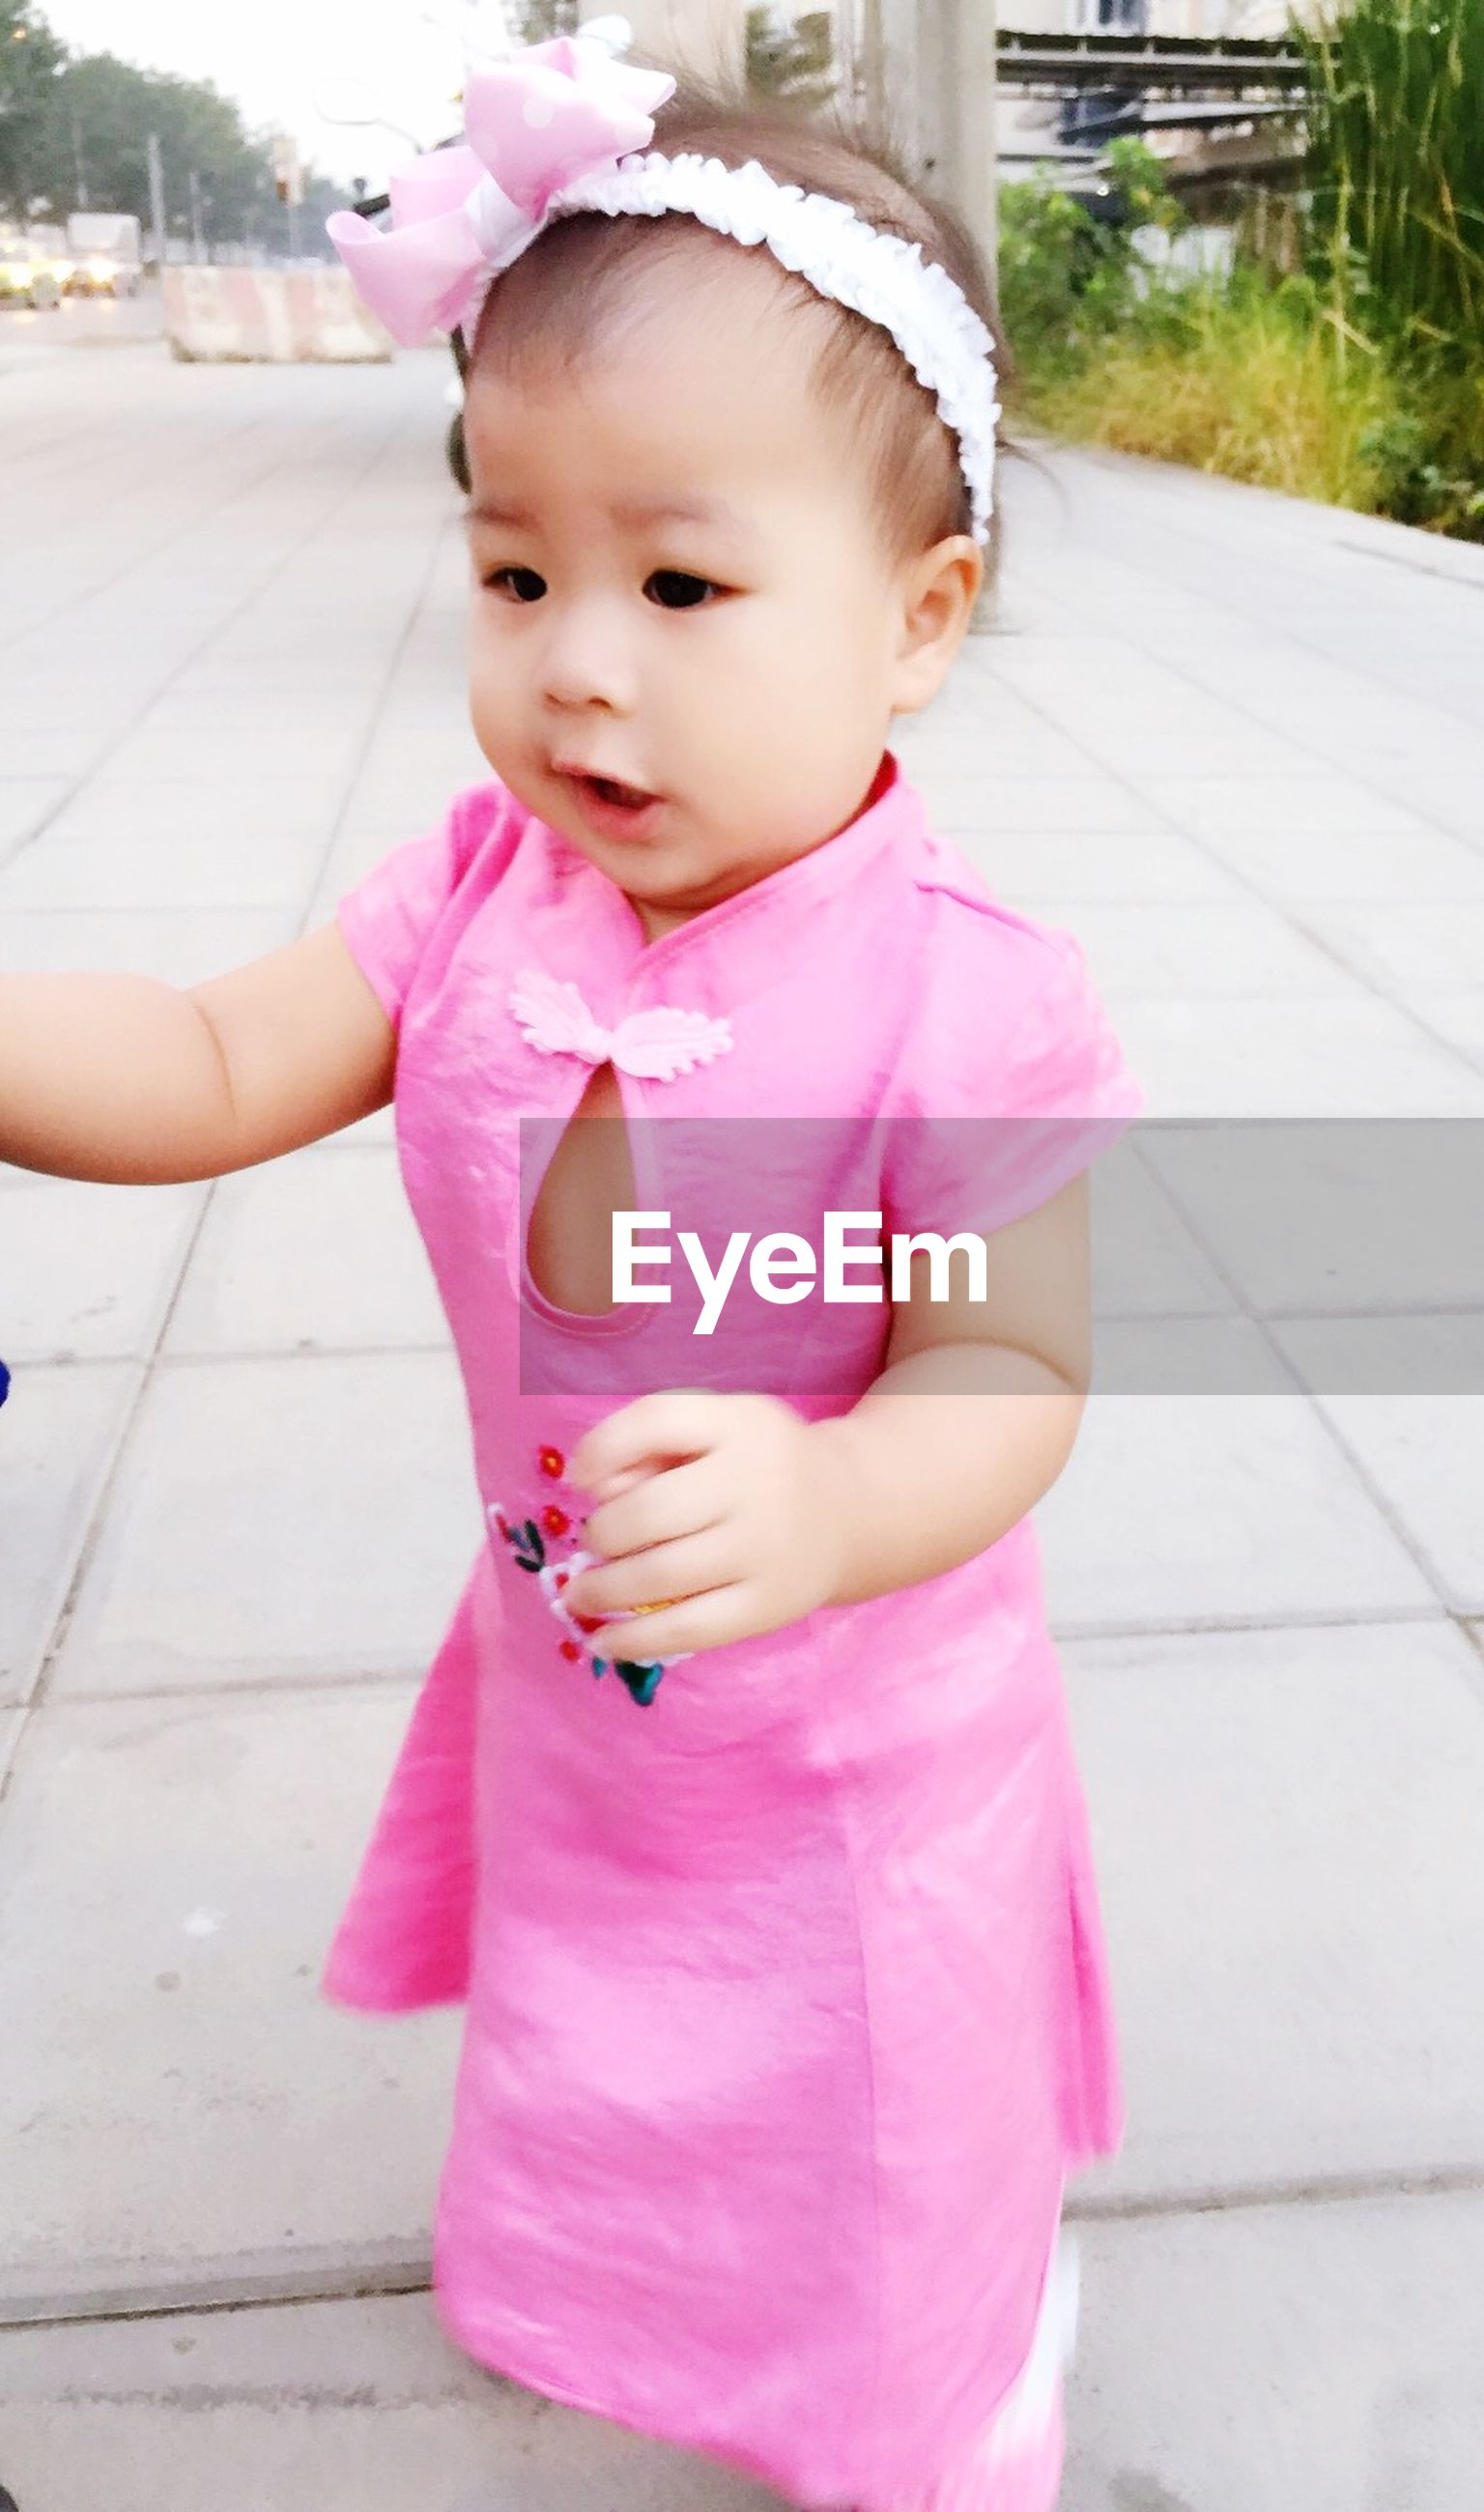 childhood, elementary age, cute, innocence, girls, person, boys, pink color, looking at camera, casual clothing, holding, portrait, toddler, lifestyles, front view, full length, leisure activity, baby